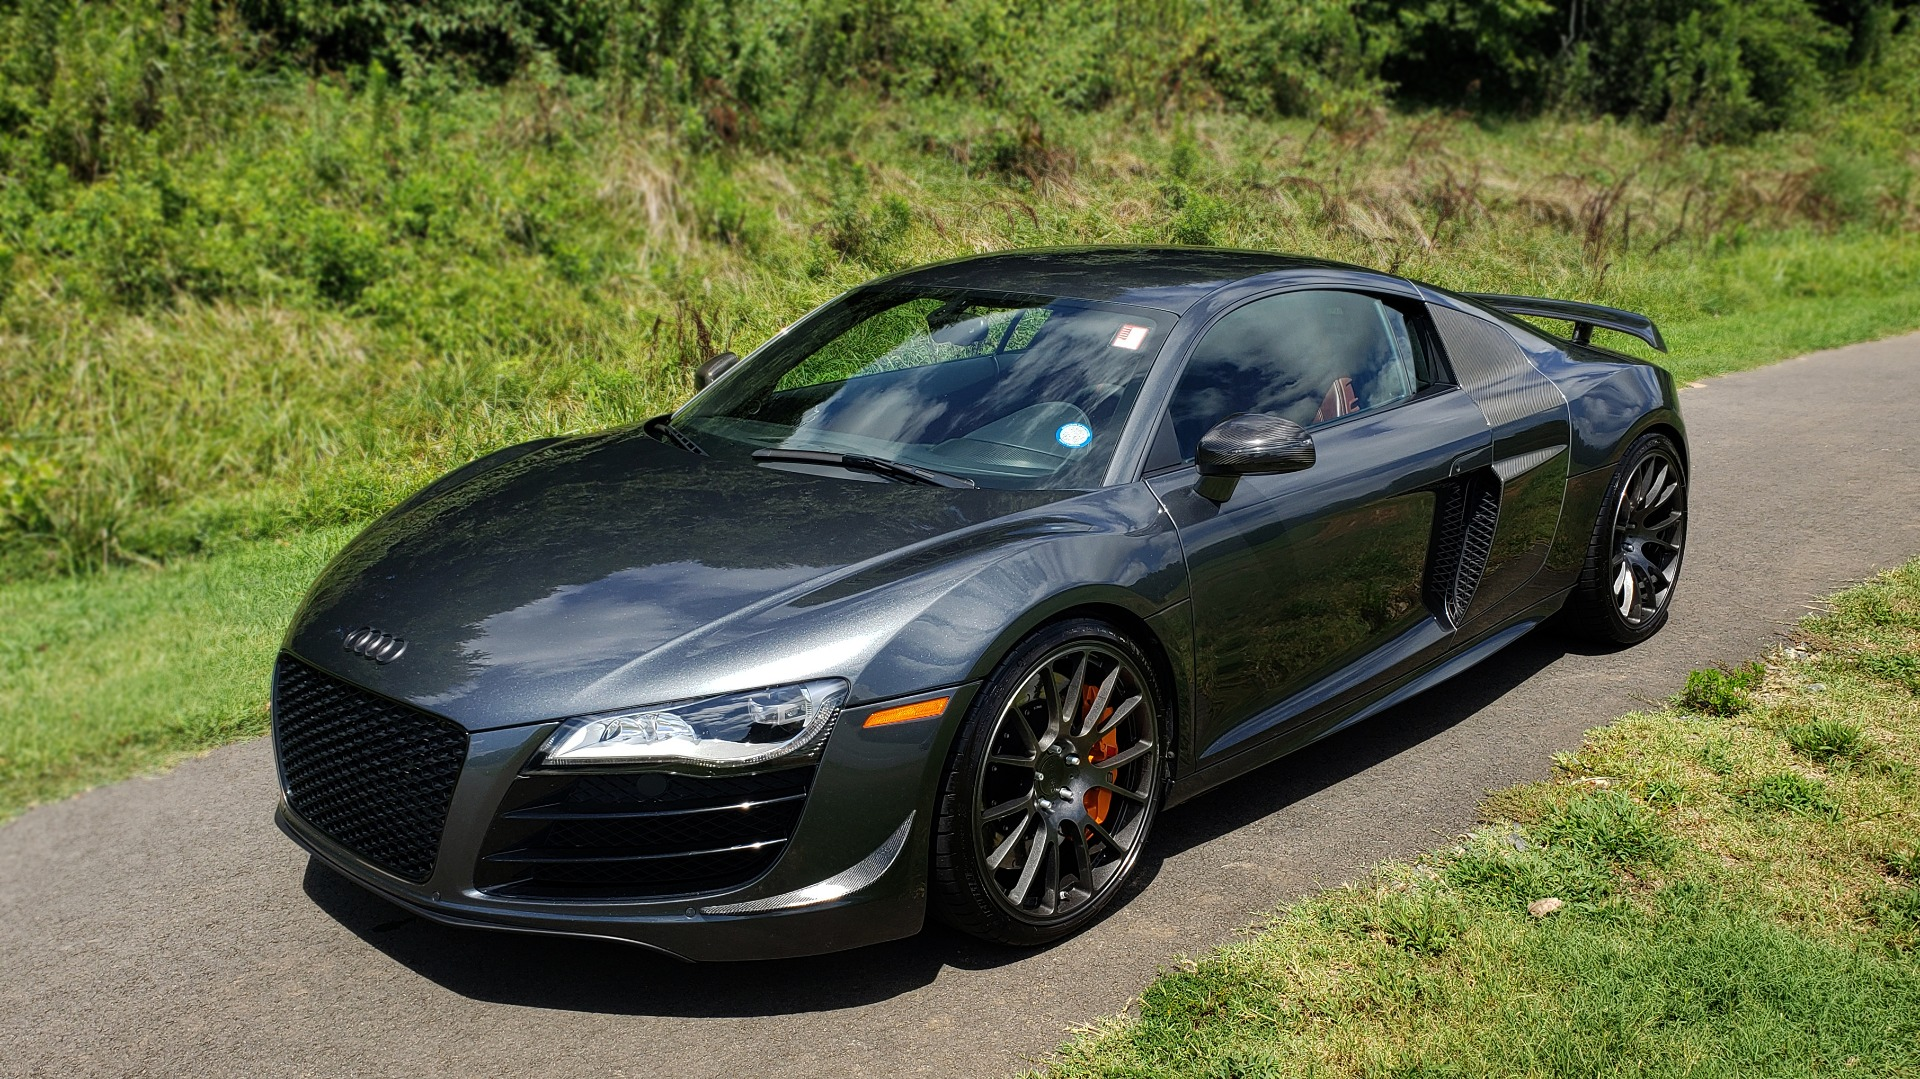 Used 2010 Audi R8 5.2L V10 SUPERCHARGED / AWD / COUPE / CUSTOM TUNED for sale $82,795 at Formula Imports in Charlotte NC 28227 4